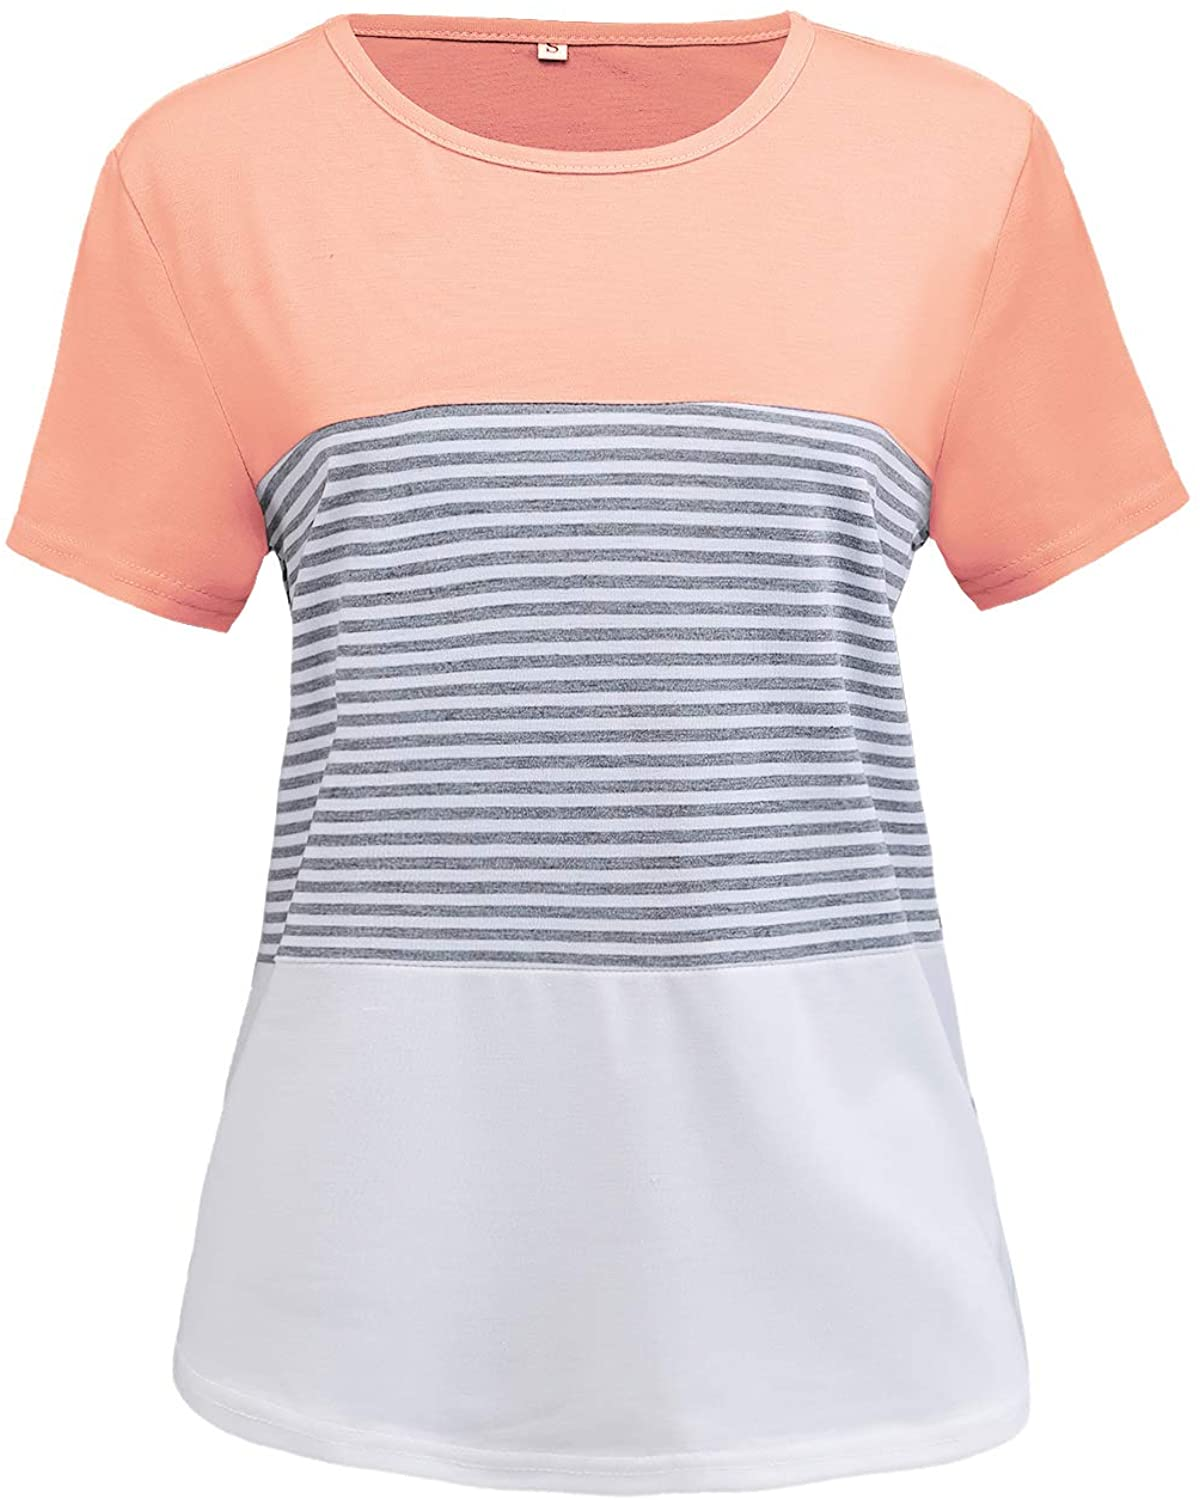 Yasswete Womens Girls Casual Color Block Top Blouse Short Sleeve Stripe T-Shirts Loose Fit Tunic